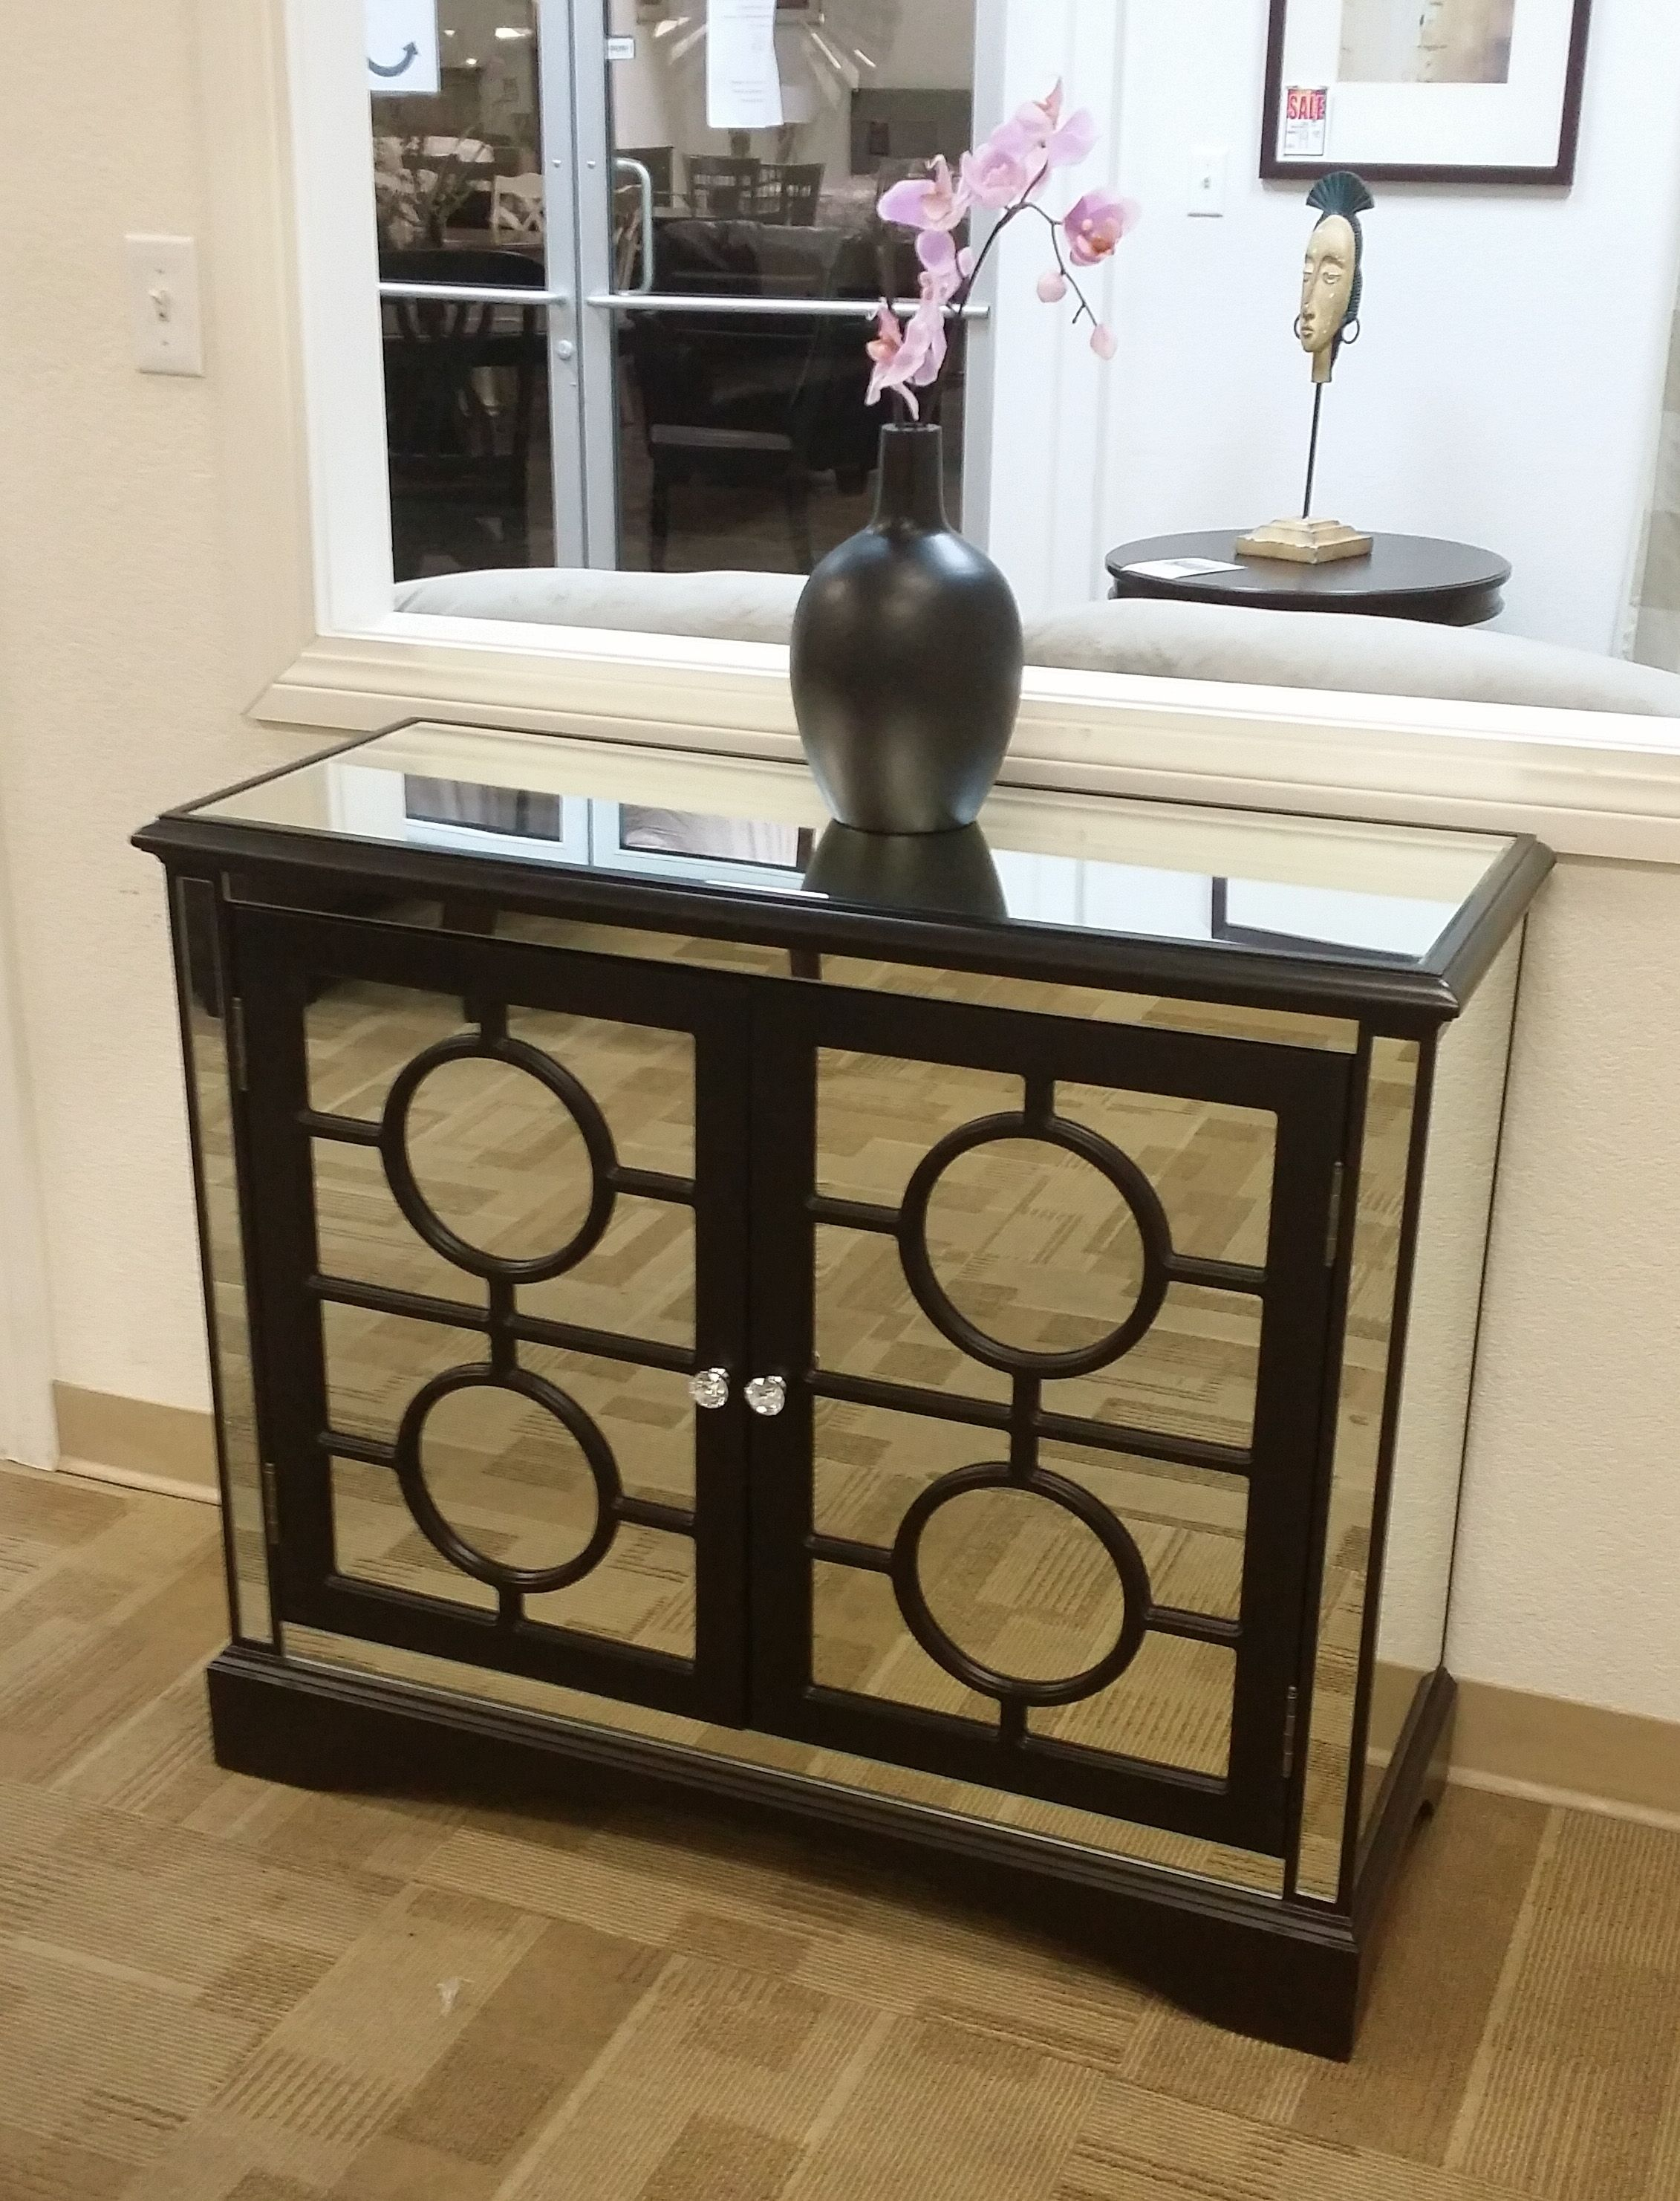 Mirrored cabinets make a impact.